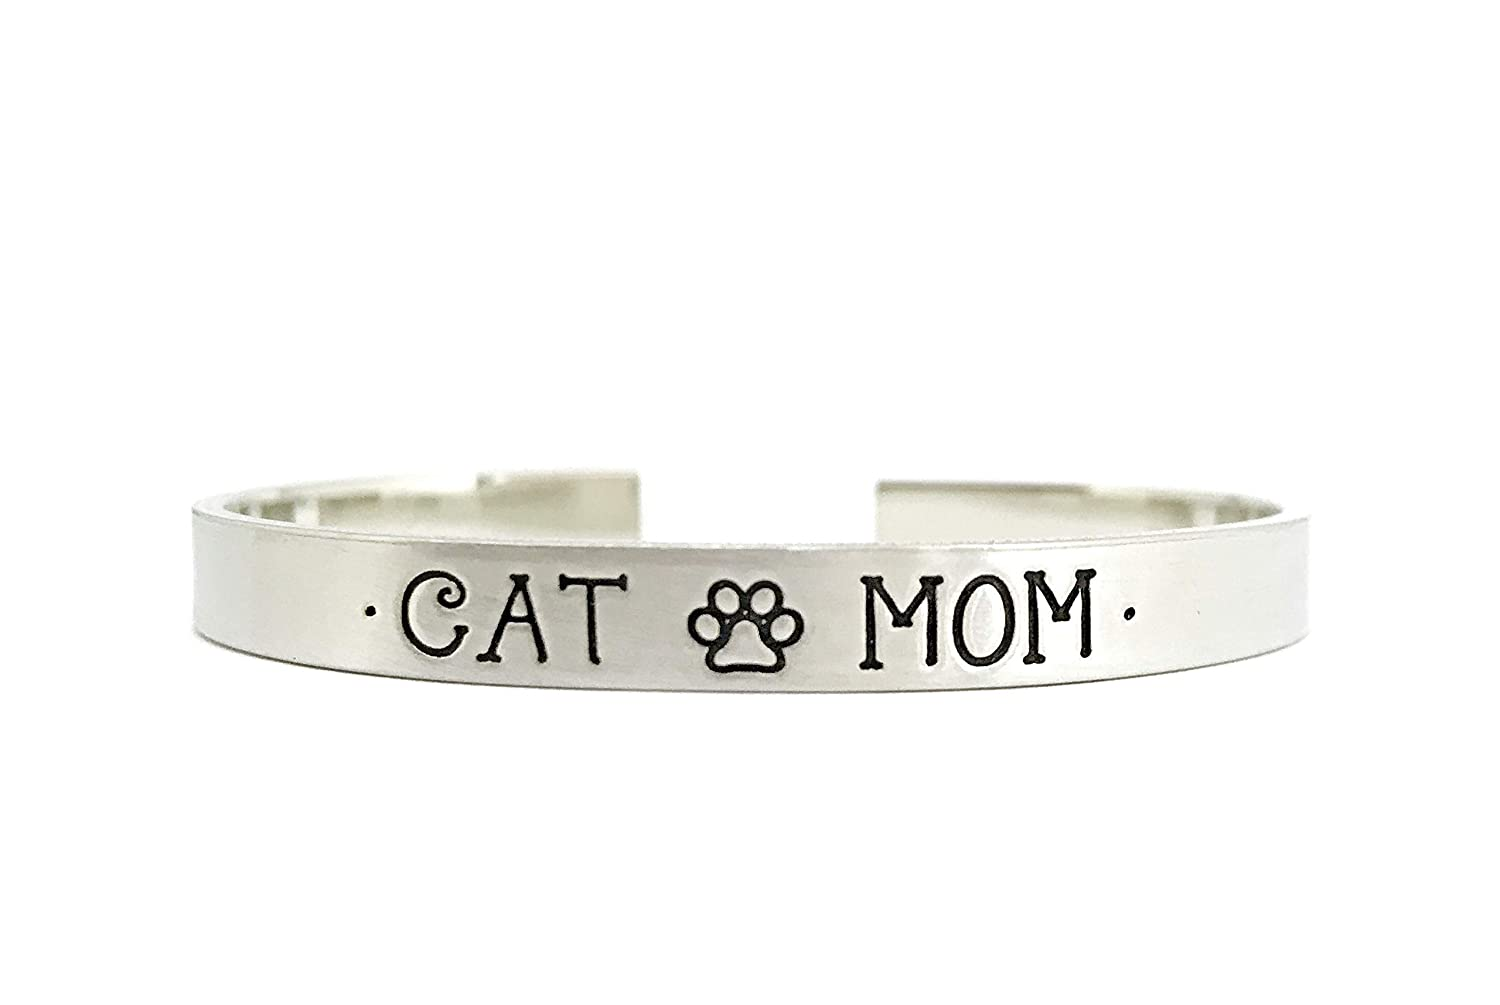 Personalized Cat Mom Gift Hand Stamped Cuff Bracelet Aluminum Stamped Bracelet Cat Owner Cuff Bracelet Cat Mom Cat Lover Cuff Bracelet